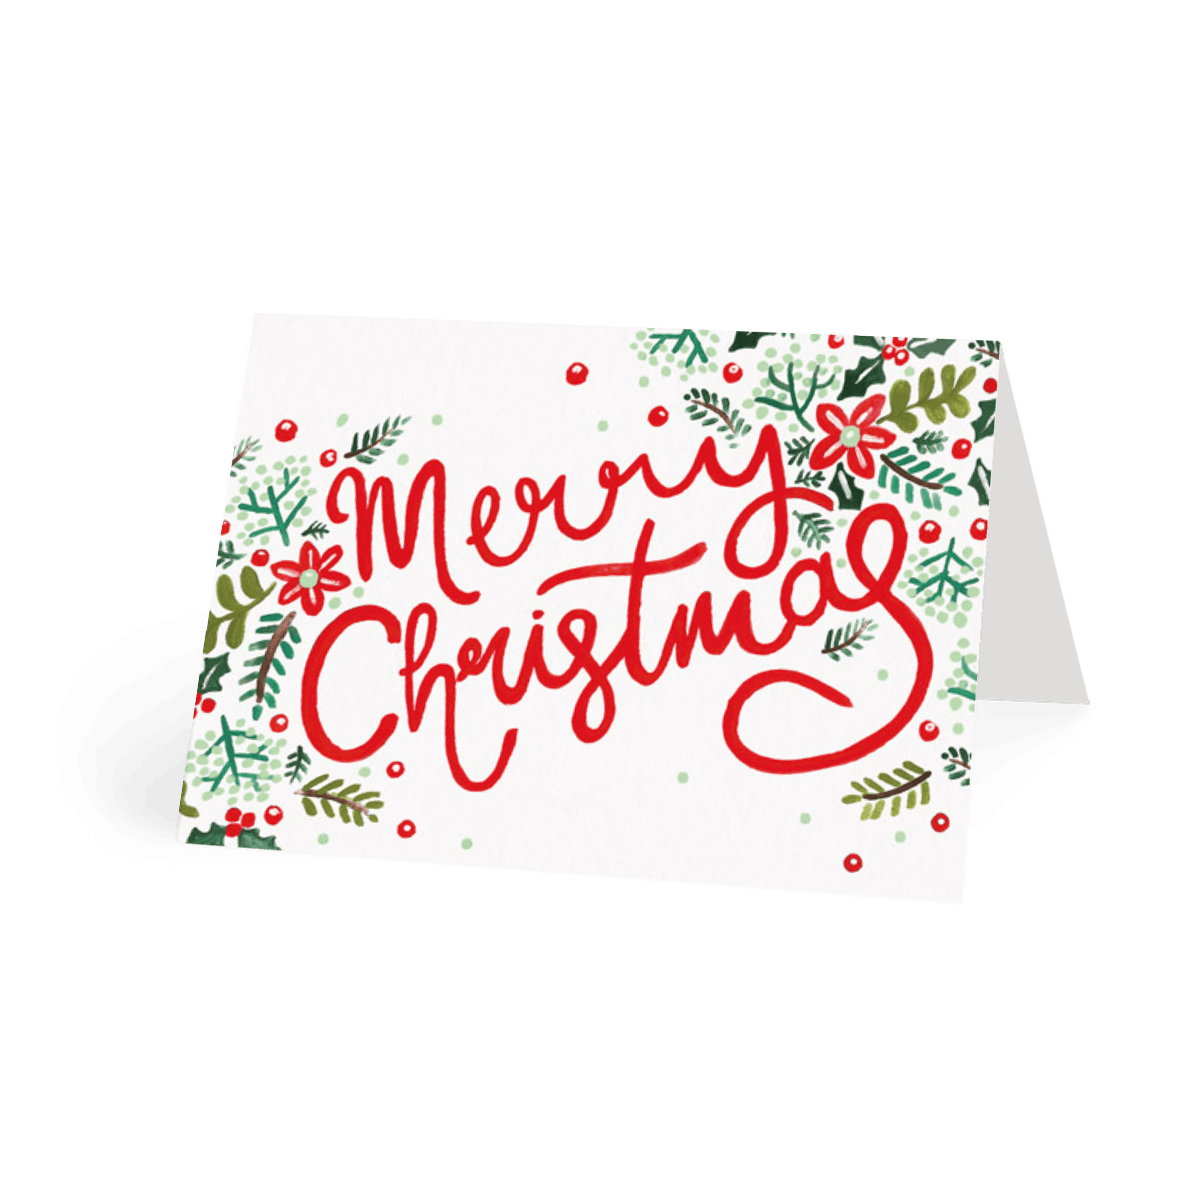 Https%3a%2f%2fwww.papier.com%2fproduct image%2f39636%2f14%2fmerry christmas foliage 9844 front 1528712037.png?ixlib=rb 1.1